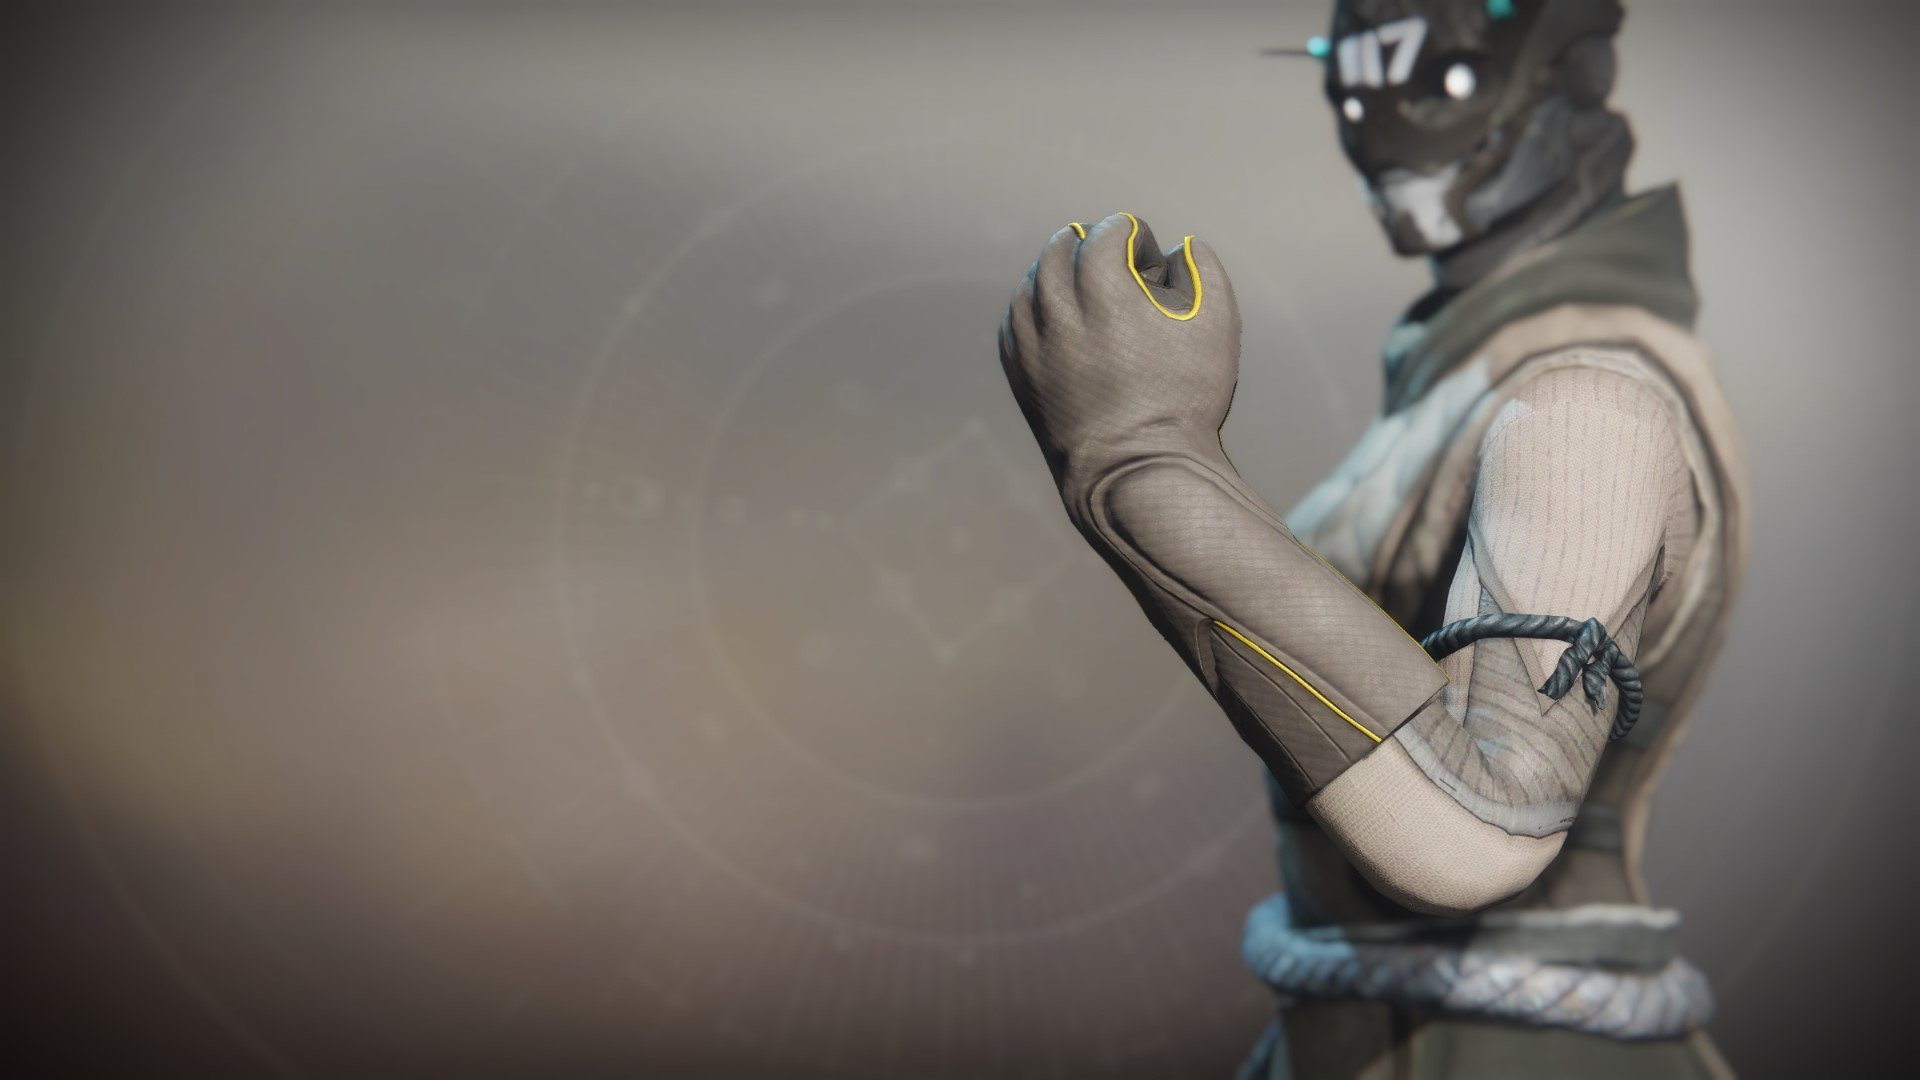 An in-game render of the Ego Talon IV.